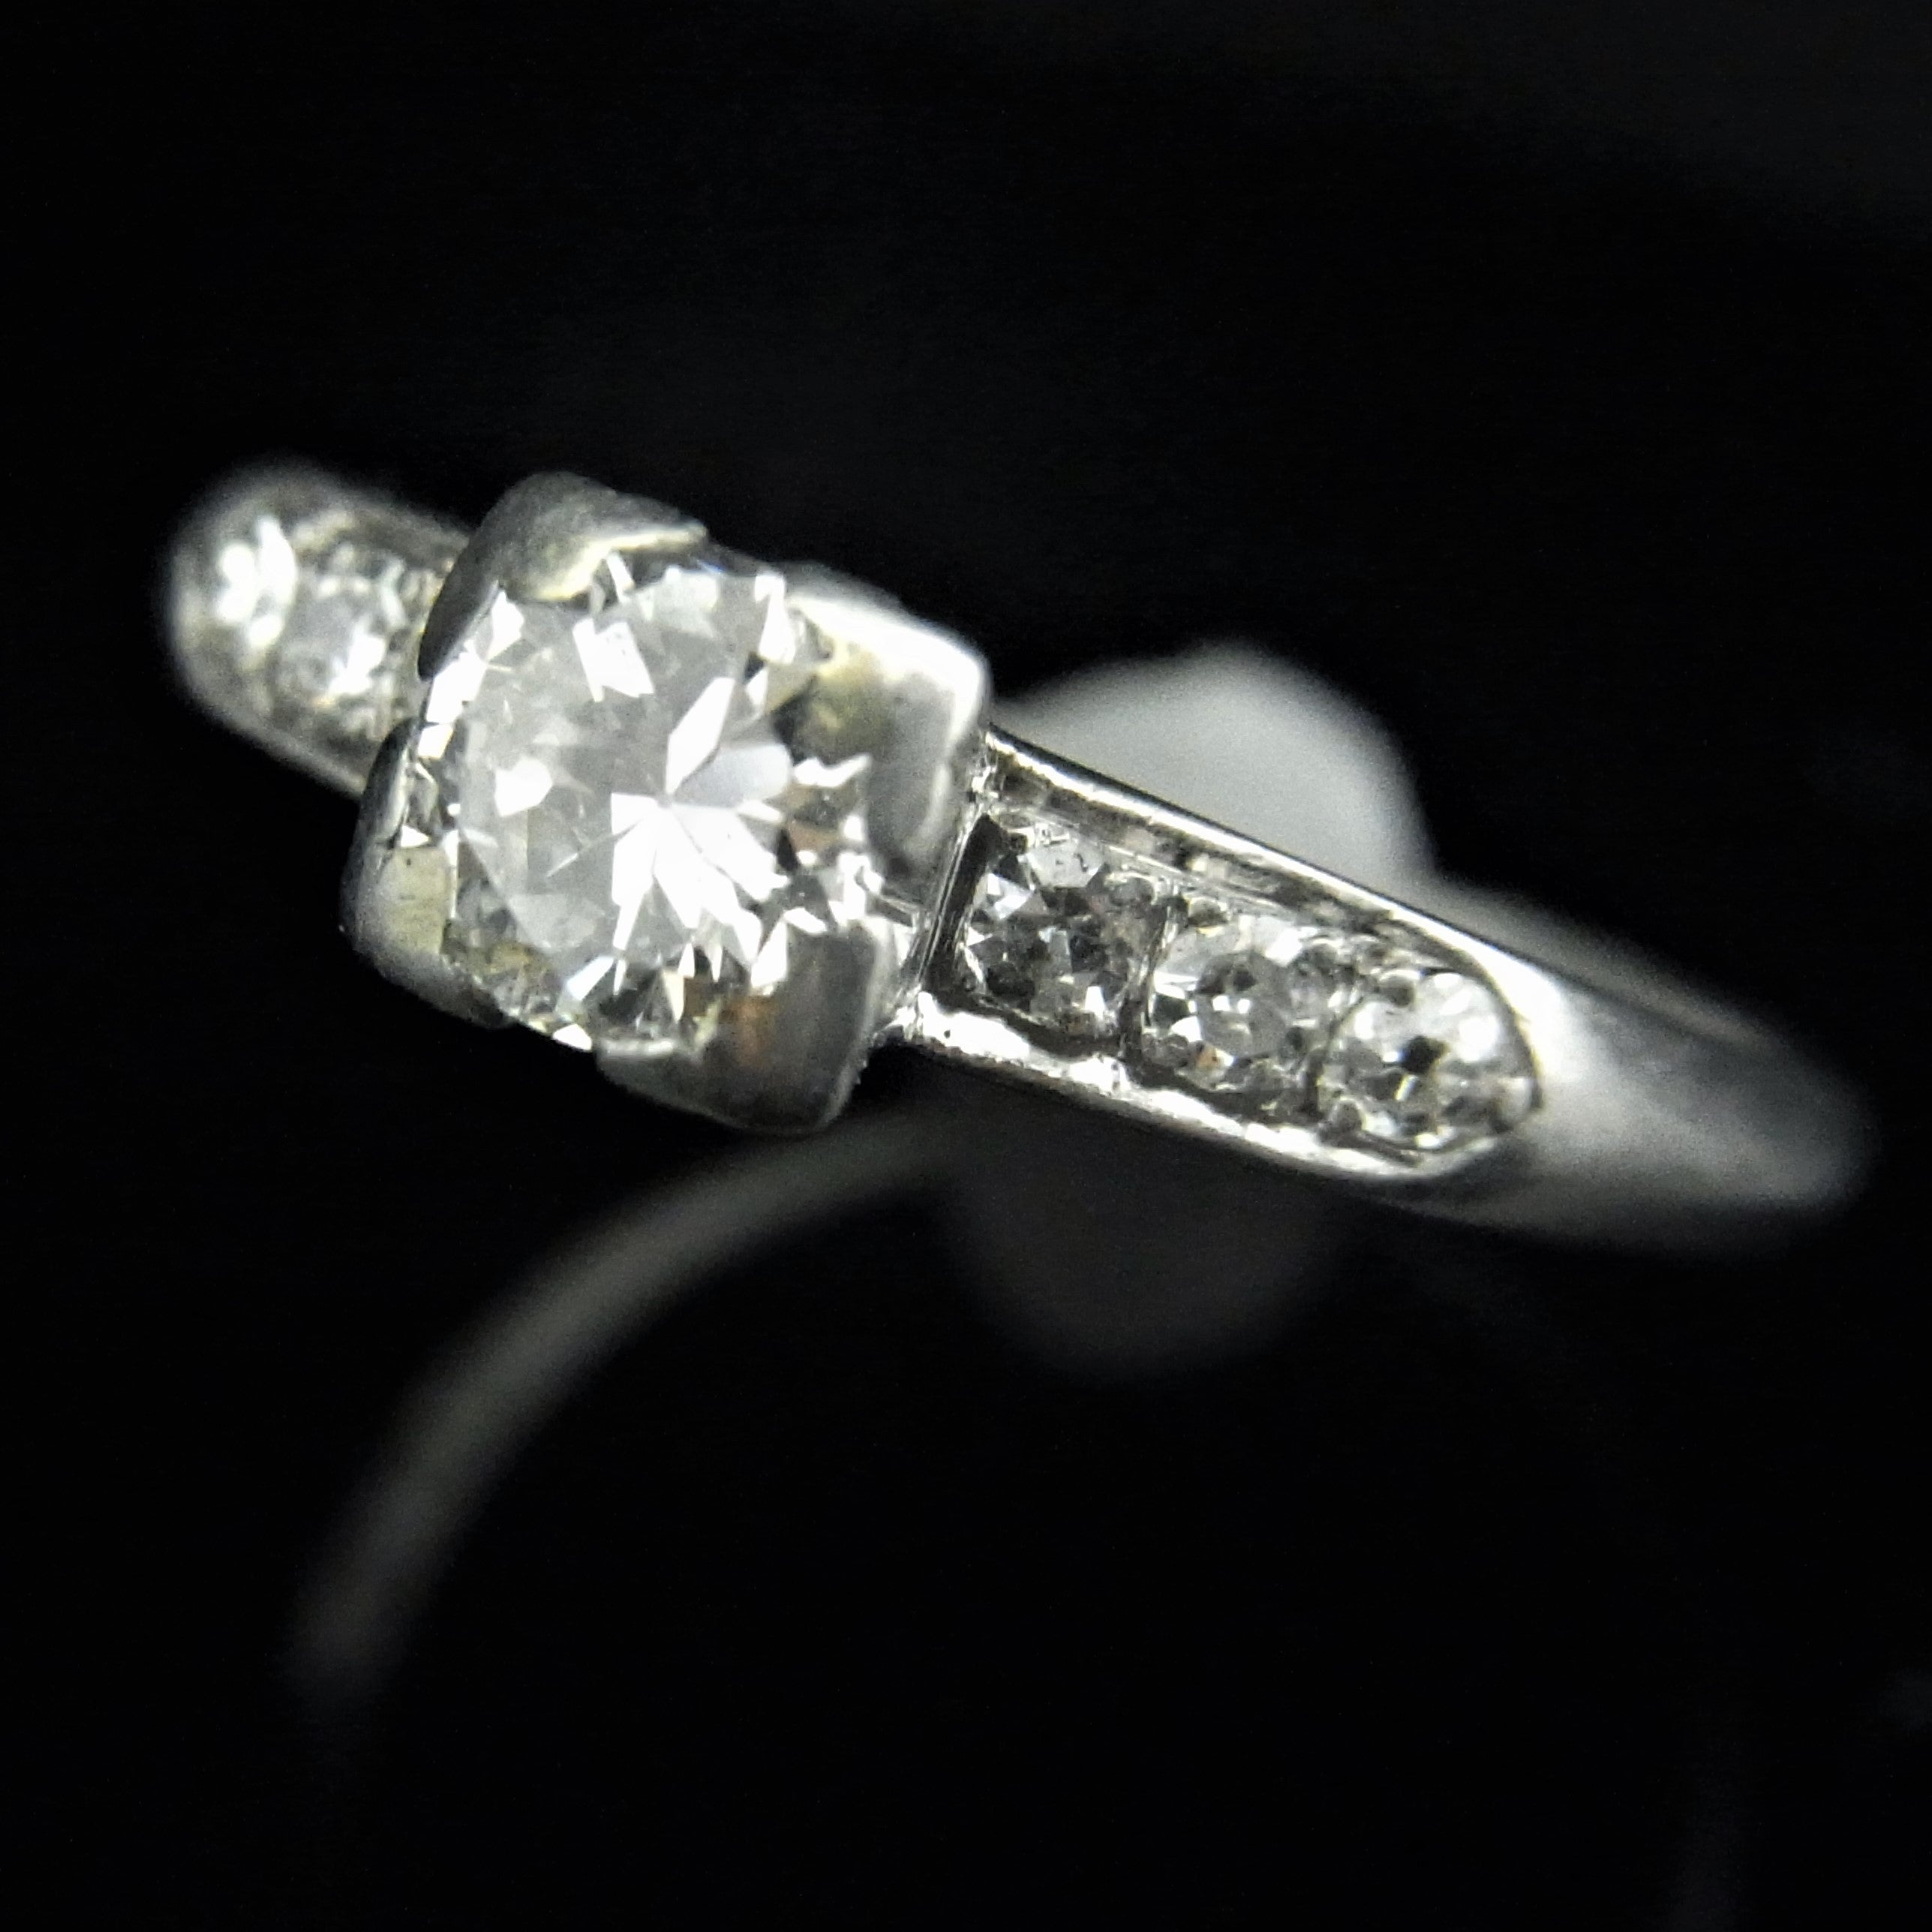 C1930s Transition Cut Diamond Platinum Engagement Ring